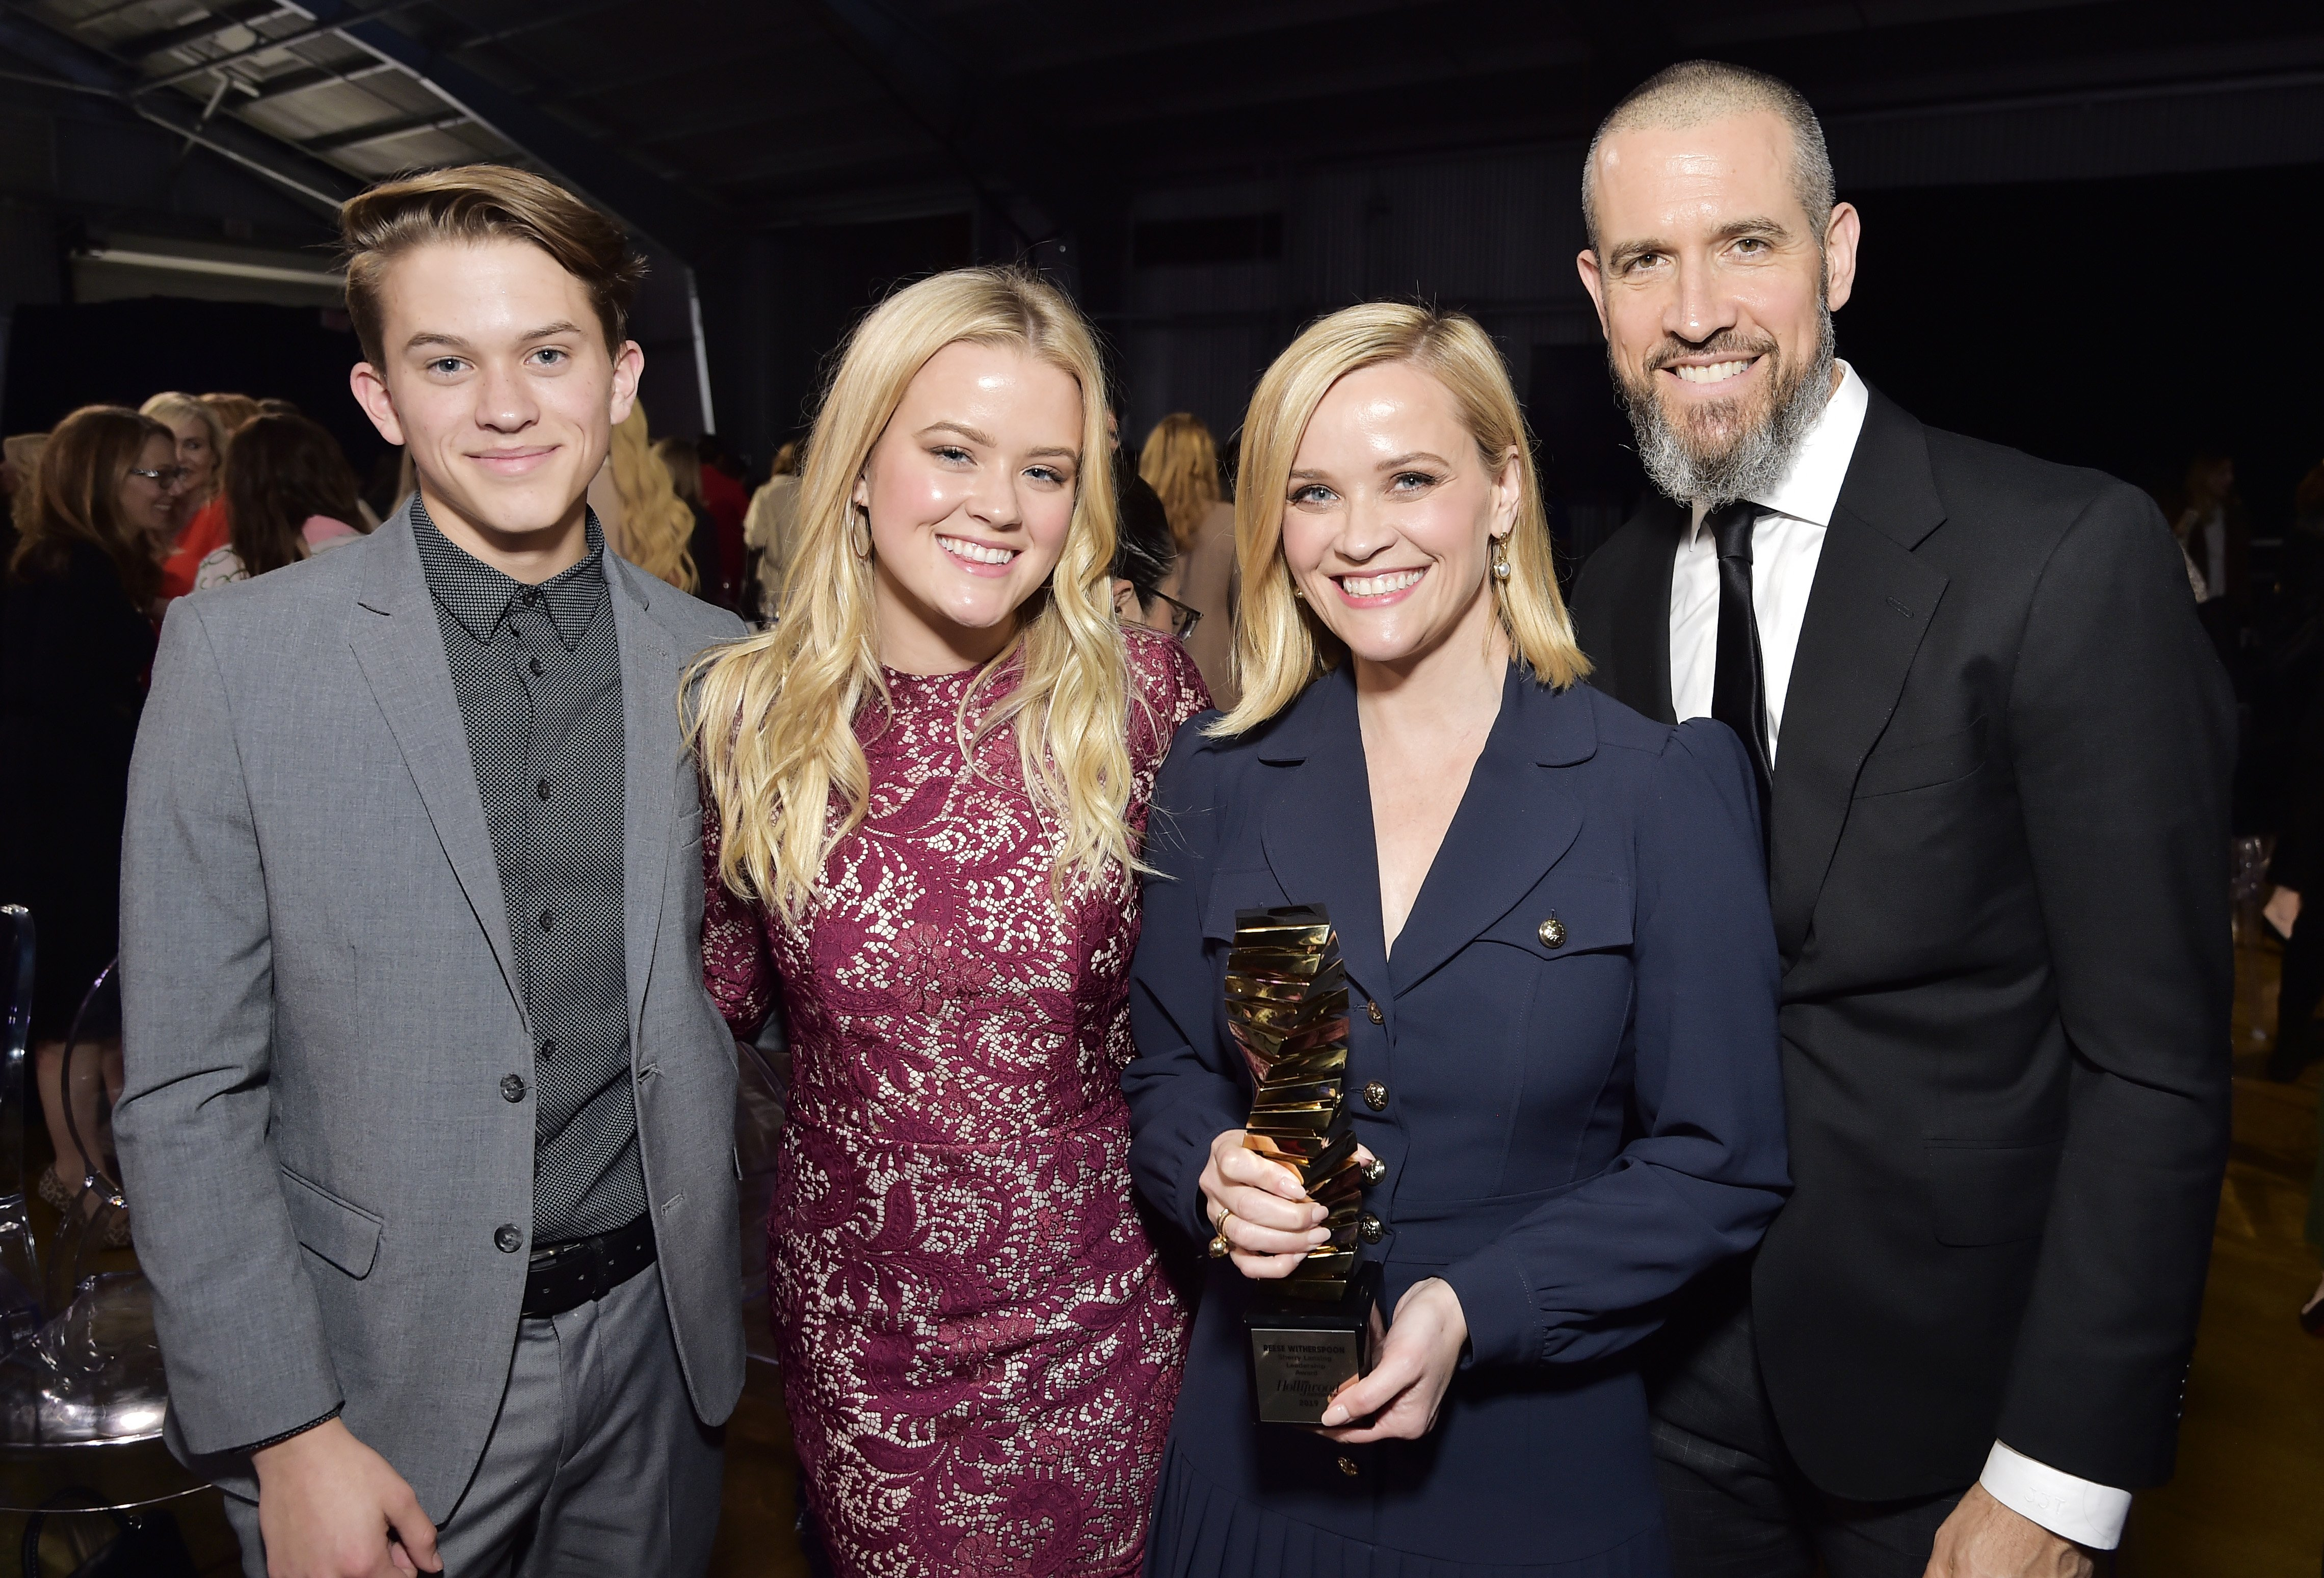 Deacon Reese Phillippe, Ava Elizabeth Phillippe, Reese Witherspoon, and Jim Toth at The Hollywood Reporter's Power 100 Women in Entertainment on December 11, 2019, in Hollywood, California. | Source: Getty Images